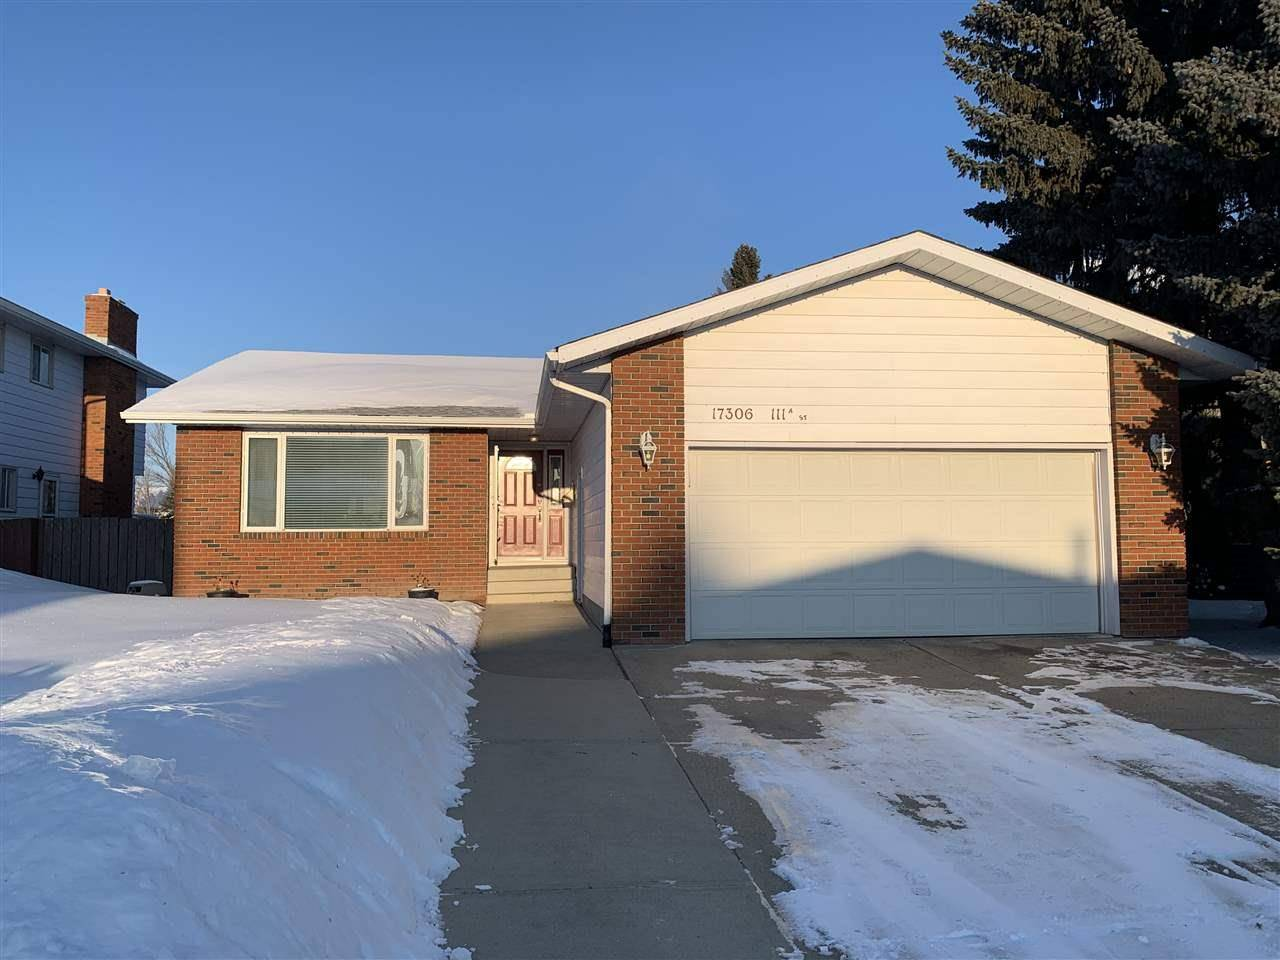 House for sale at 17306 111a St Nw Edmonton Alberta - MLS: E4193314